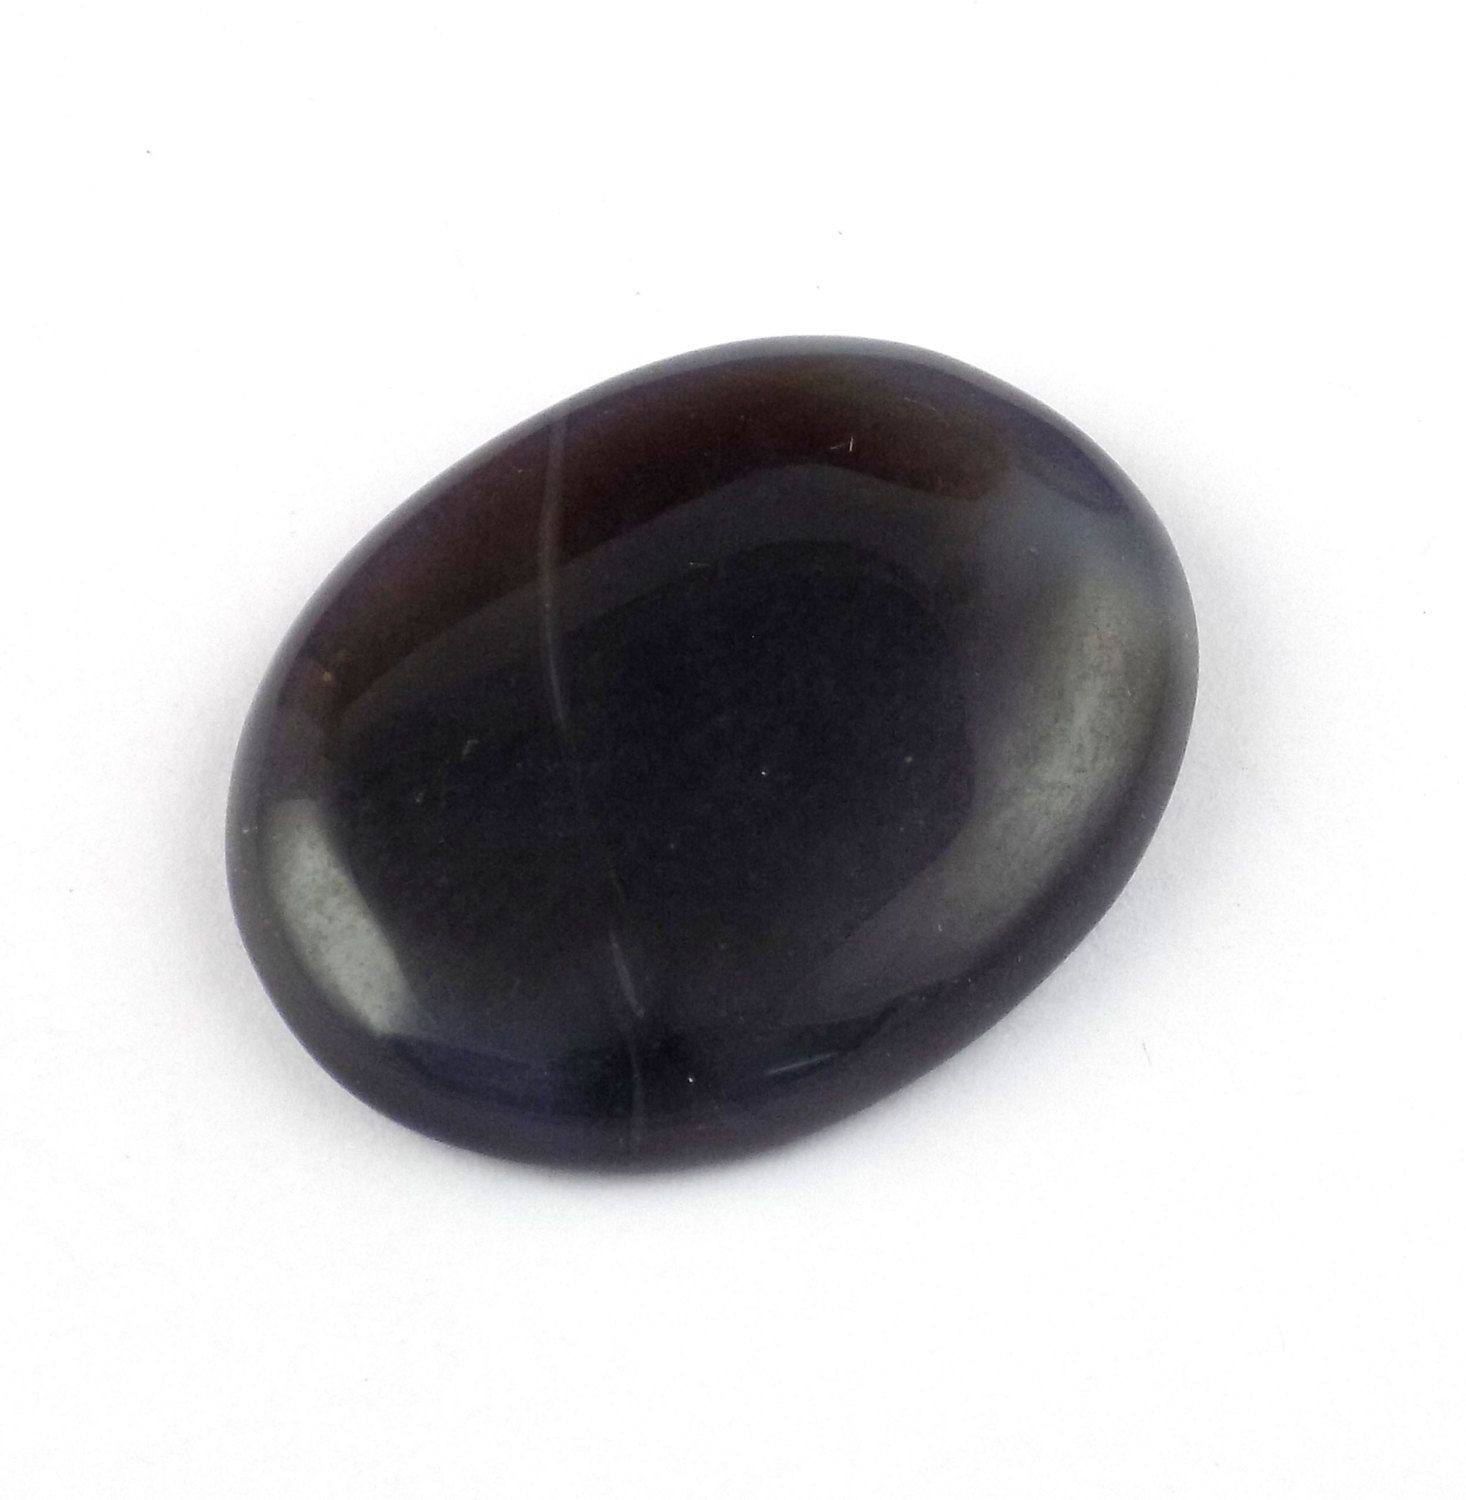 1 Piece Natural Agate 27x35mm Oval Cabochon Gemstone,Handmade Jewelry Making Smooth Genuine Rare Gemstone by UGCHONGKONG on Etsy